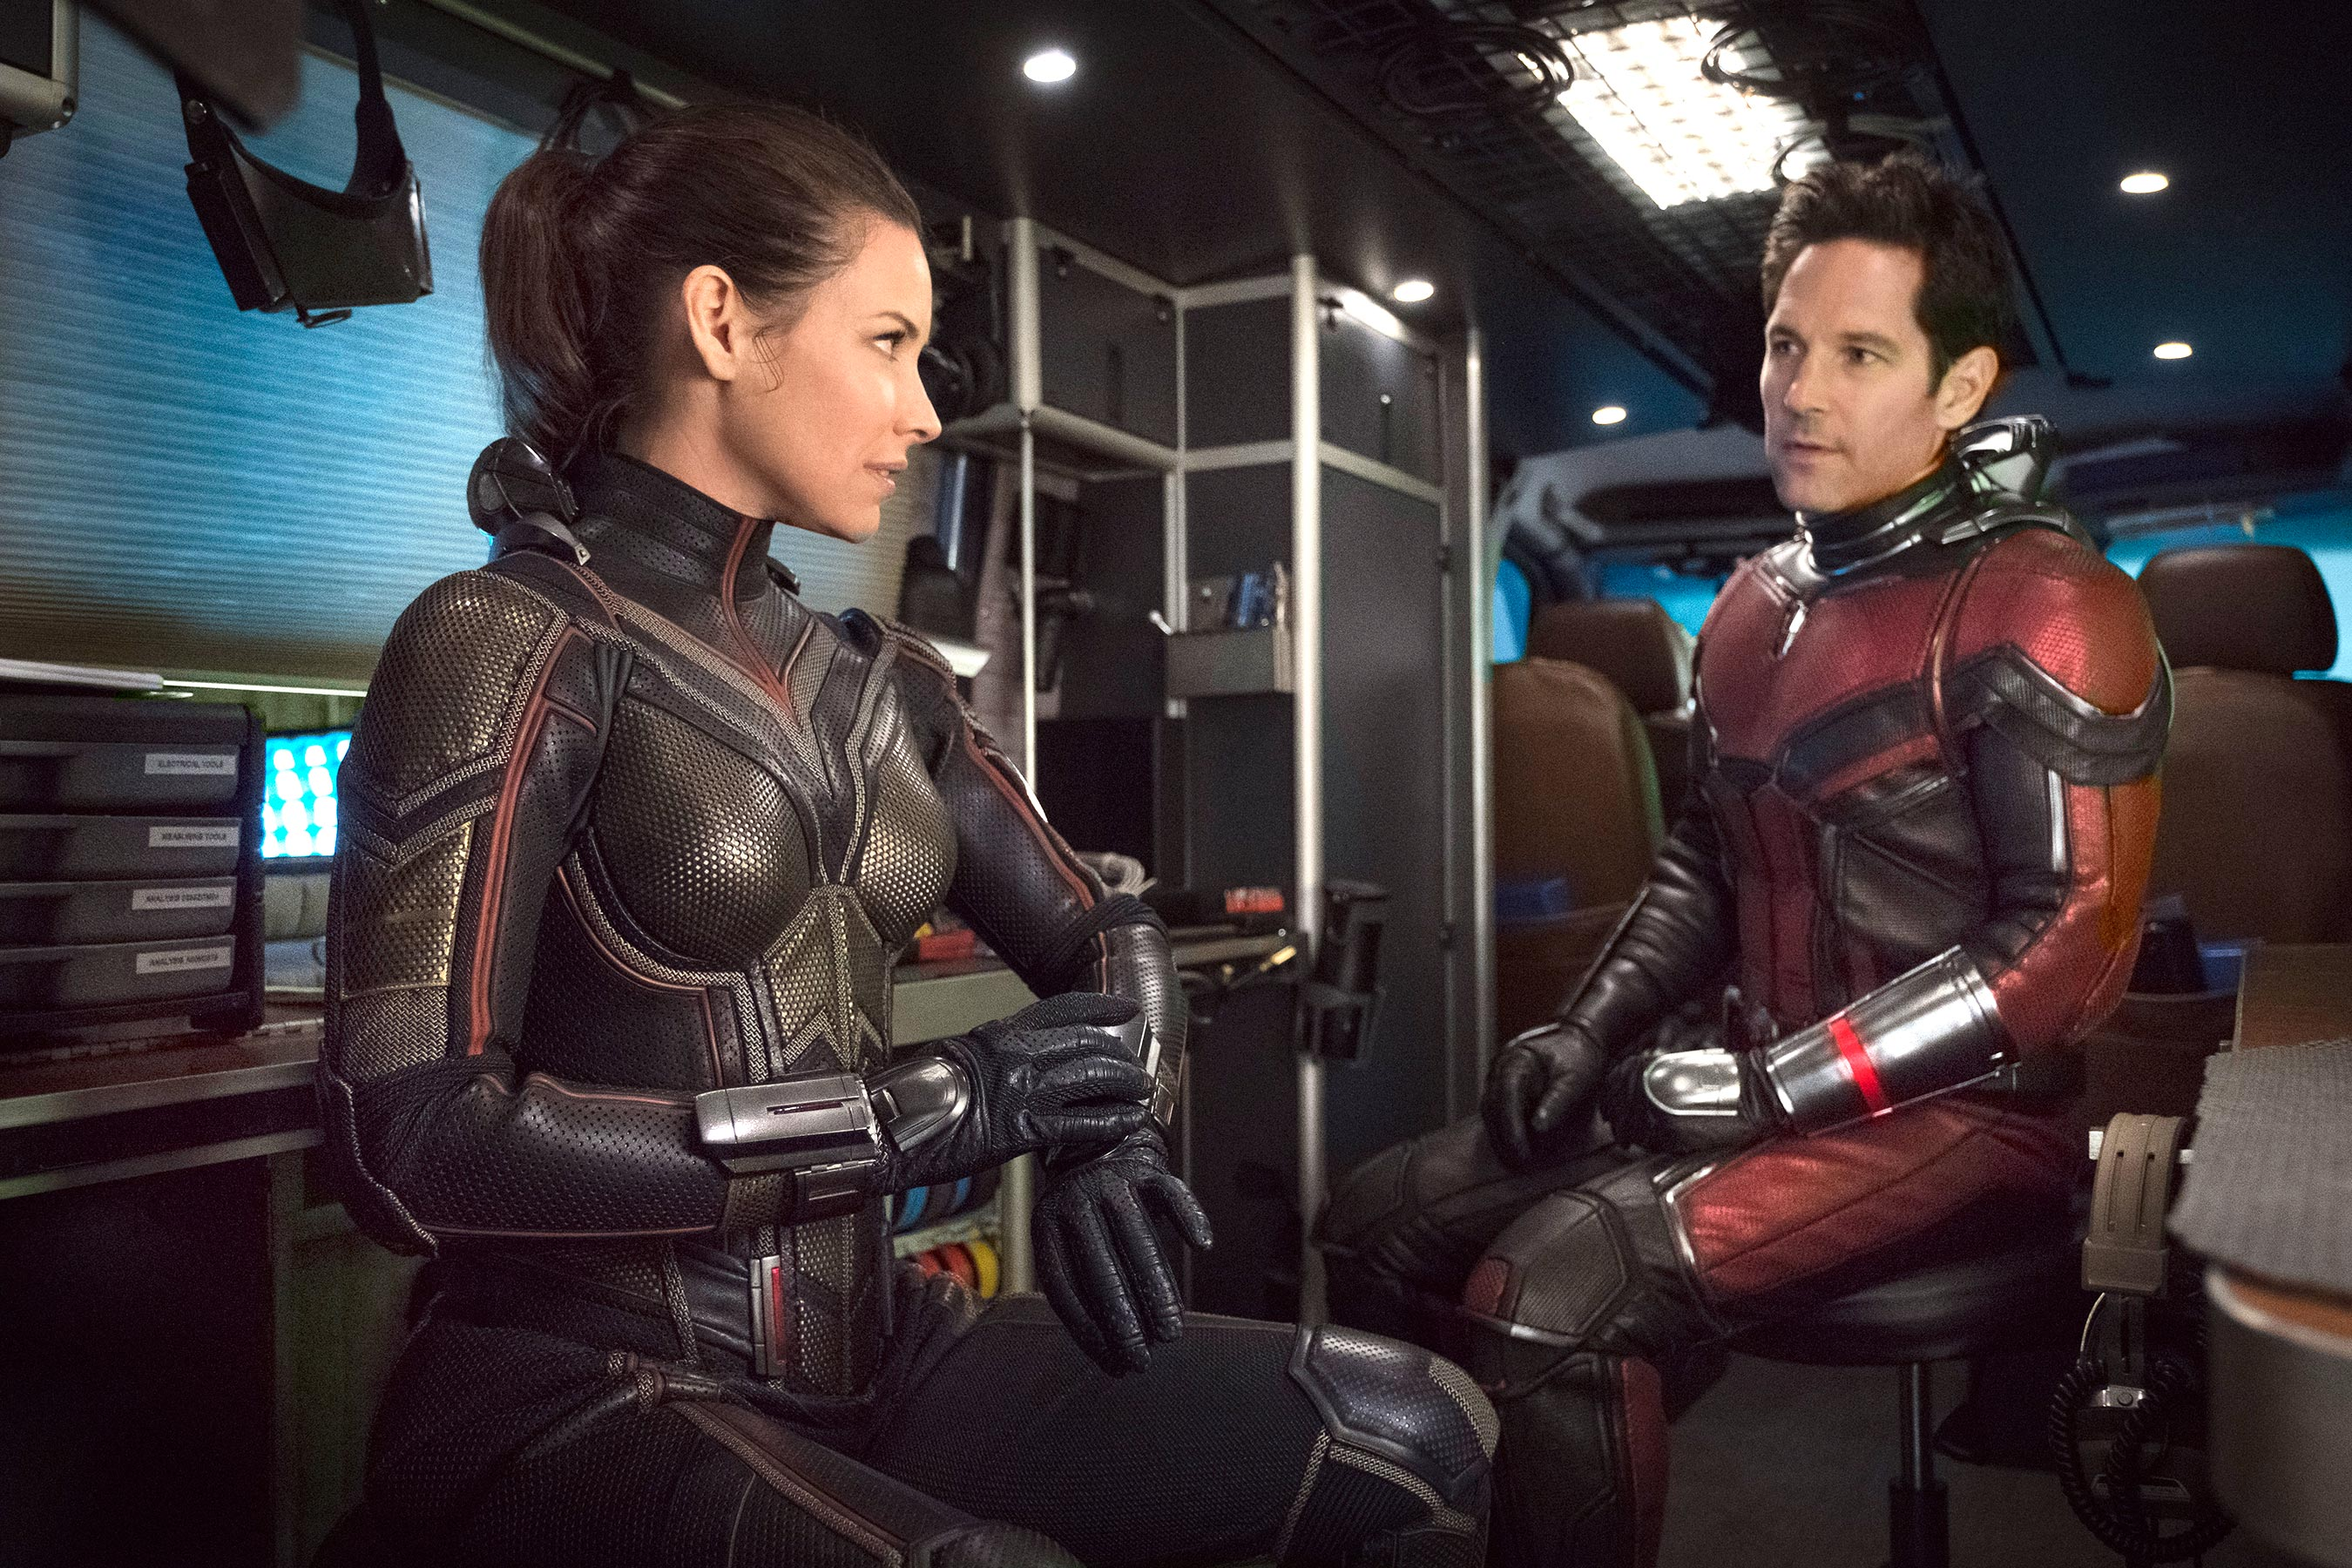 Confirmado dónde se sitúa Ant-Man and the Wasp en el UCM | RedLan Comics